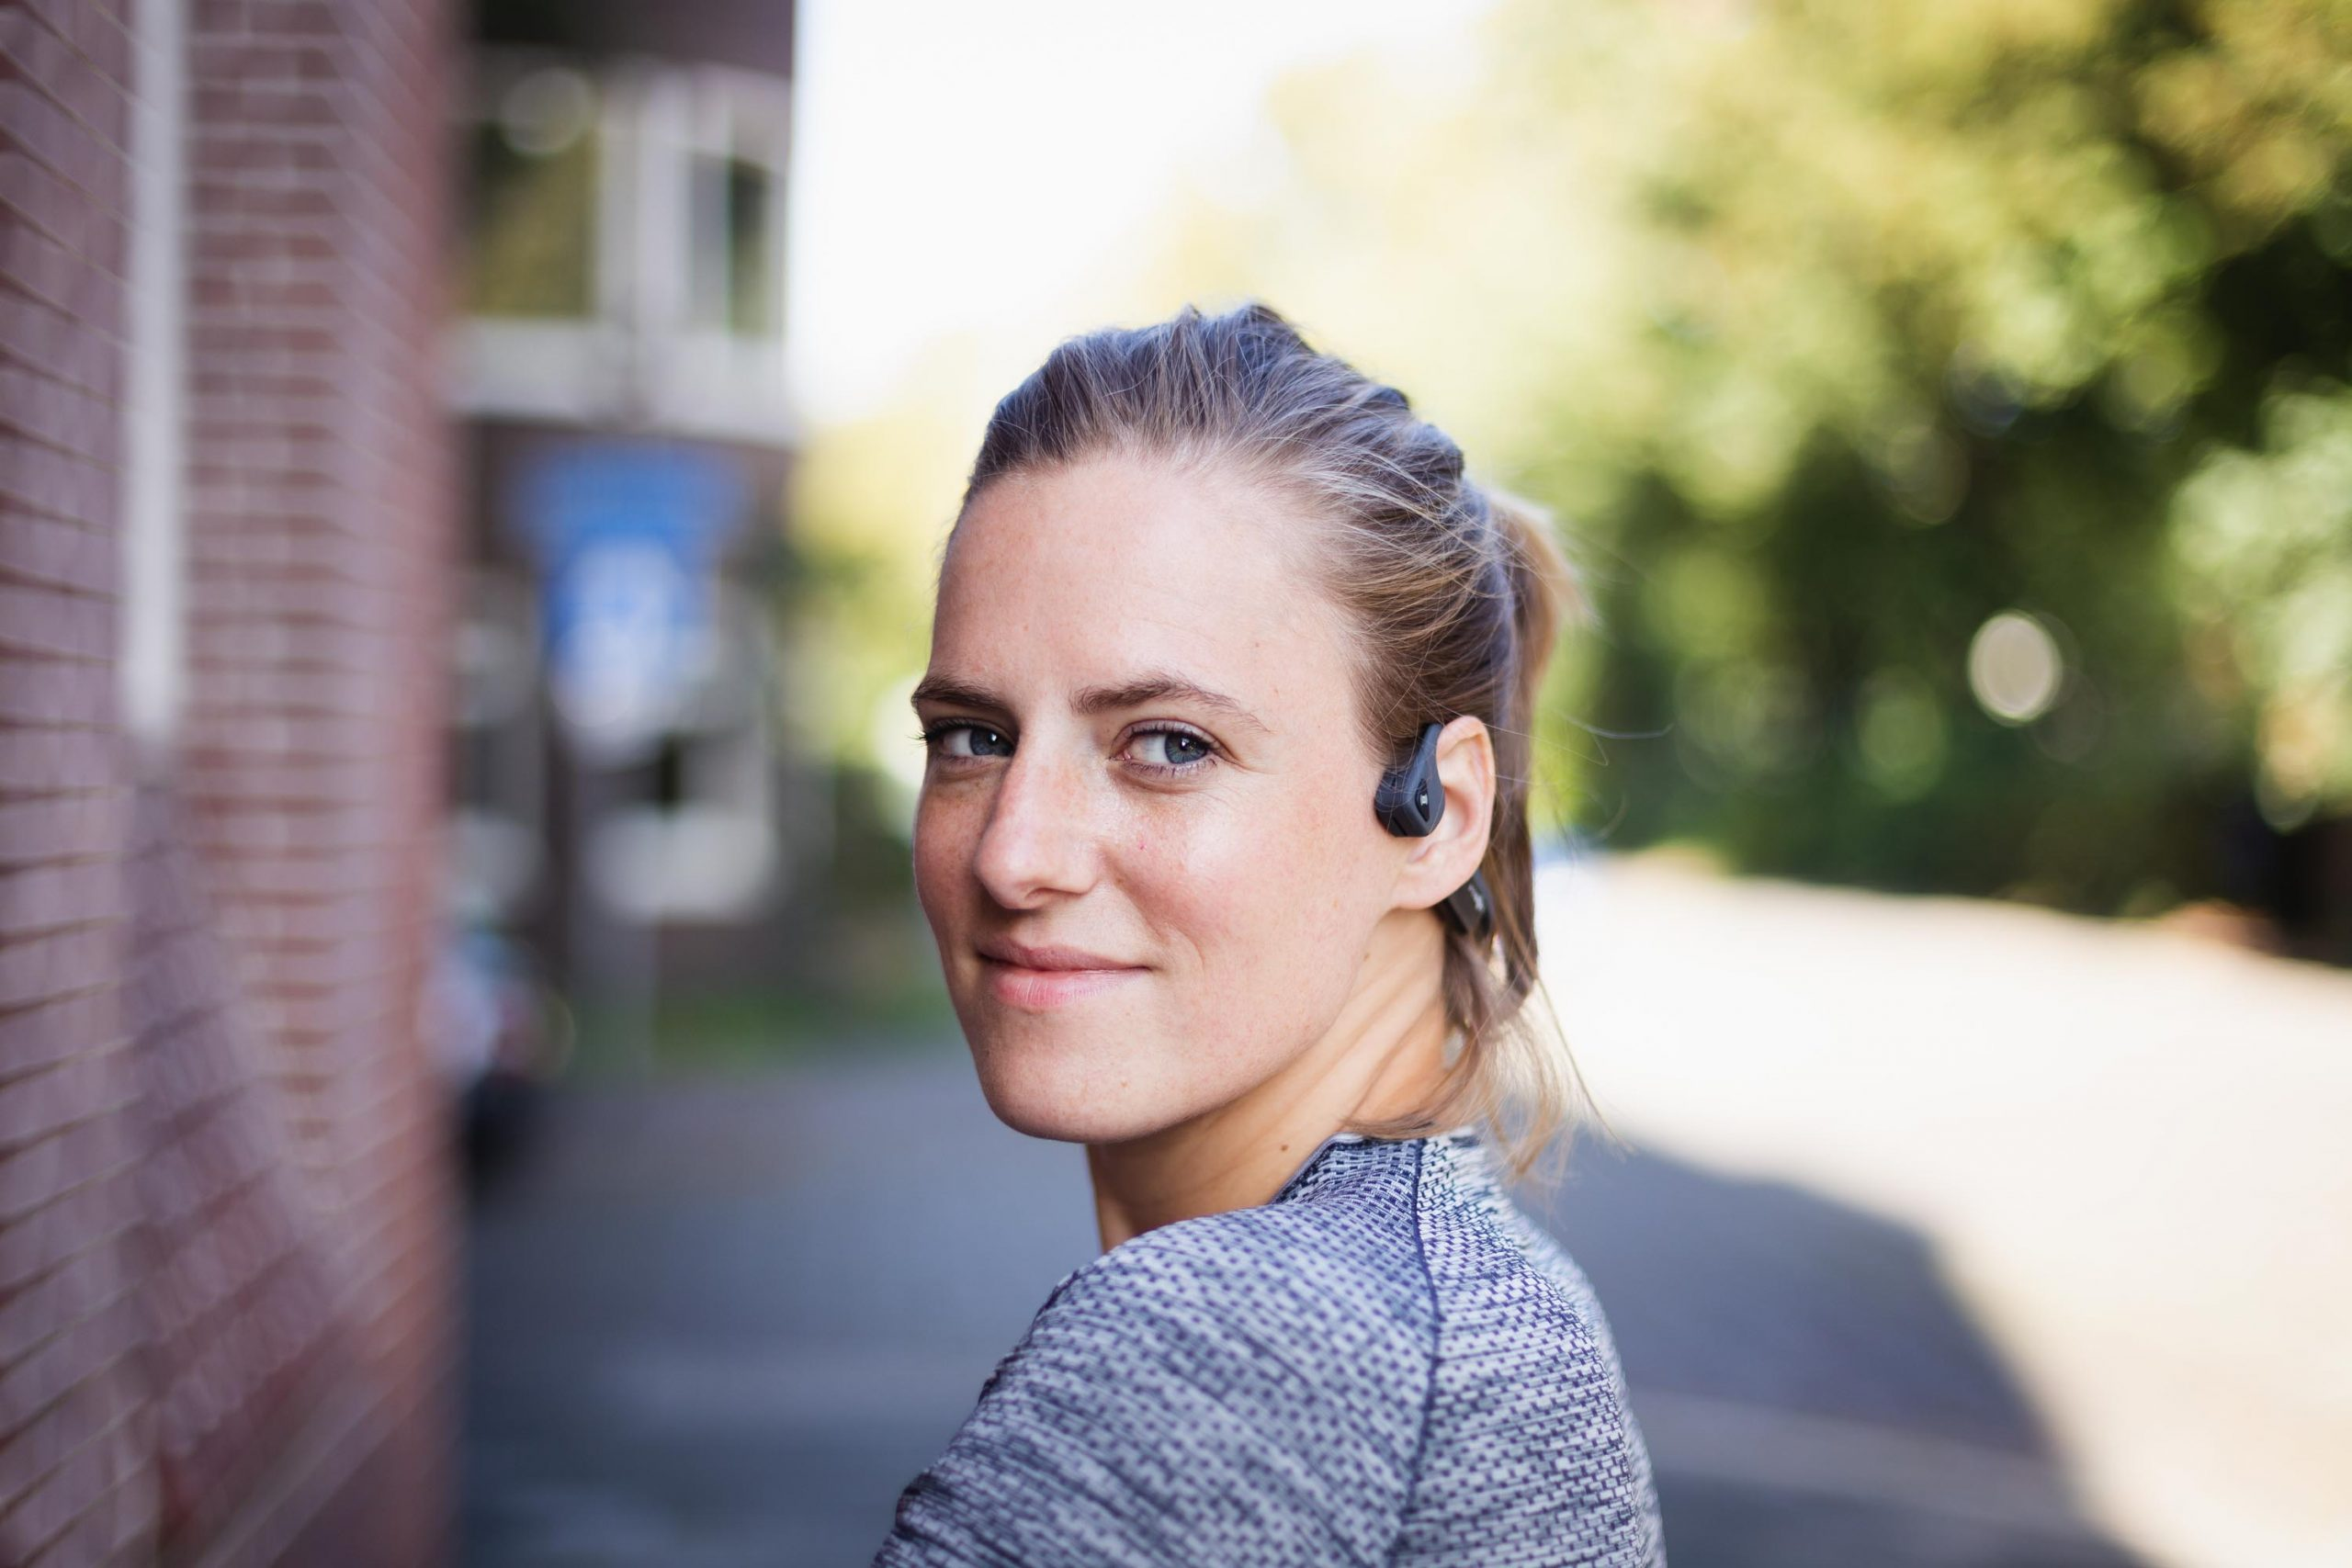 Aftershokz Headset Review